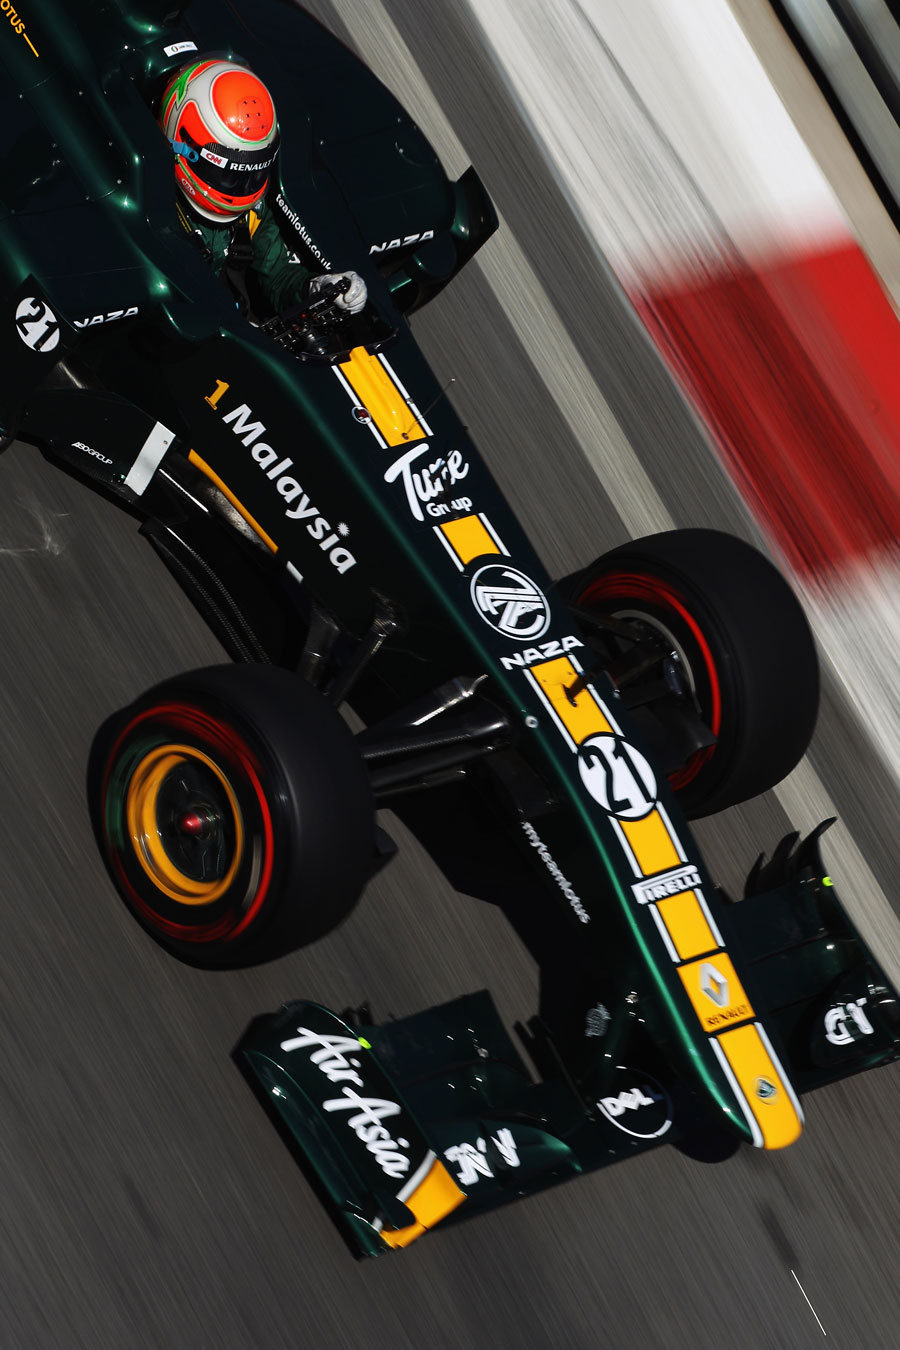 Jarno Trulli on track in the Lotus